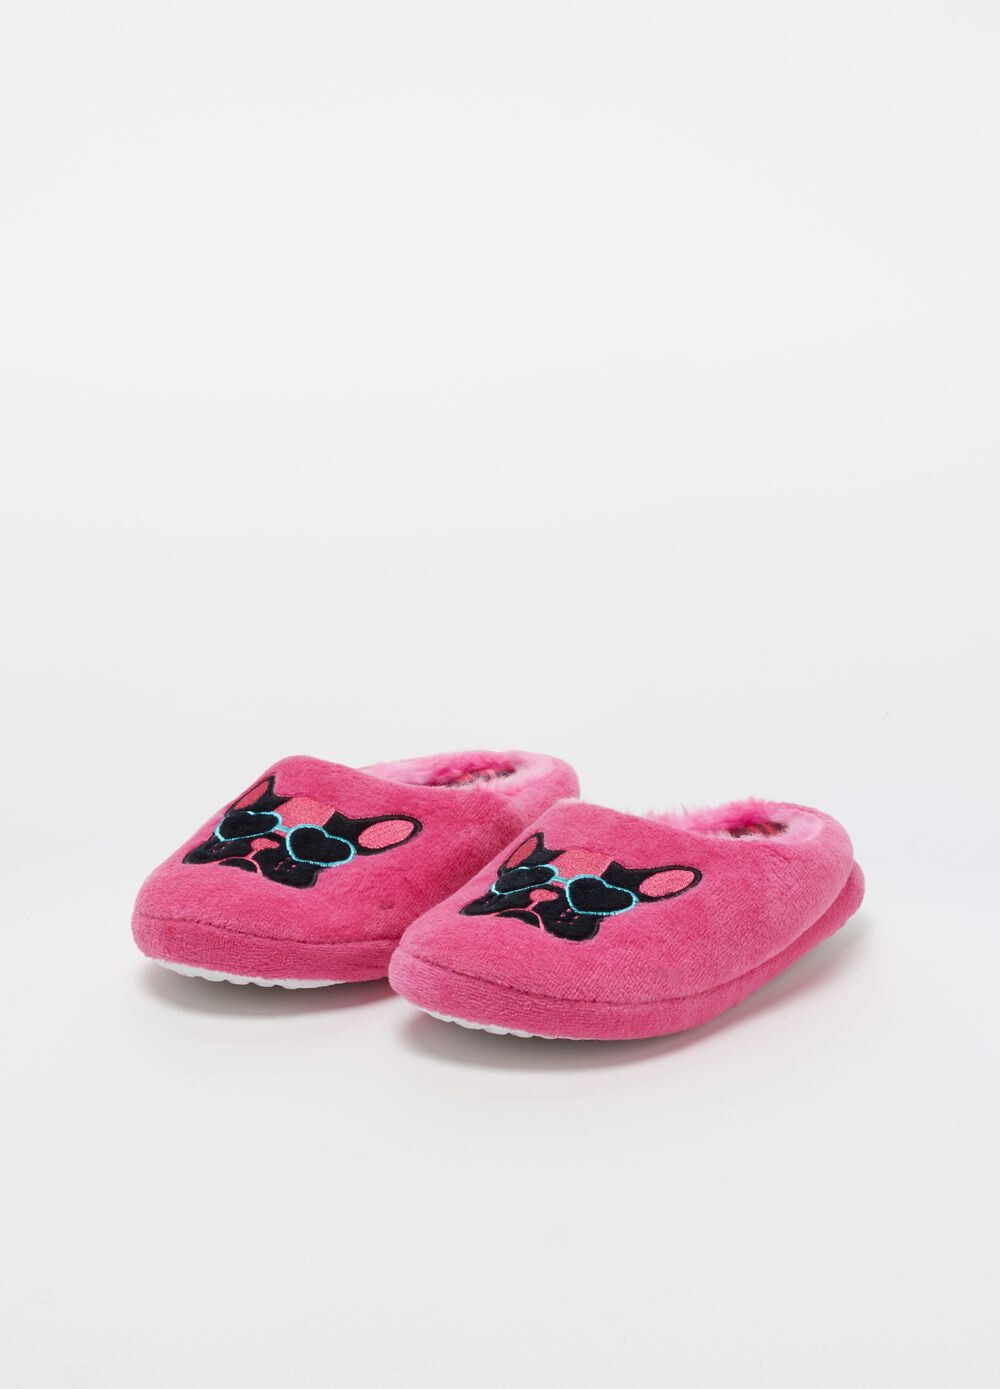 Fabric slippers with bulldog embroidery